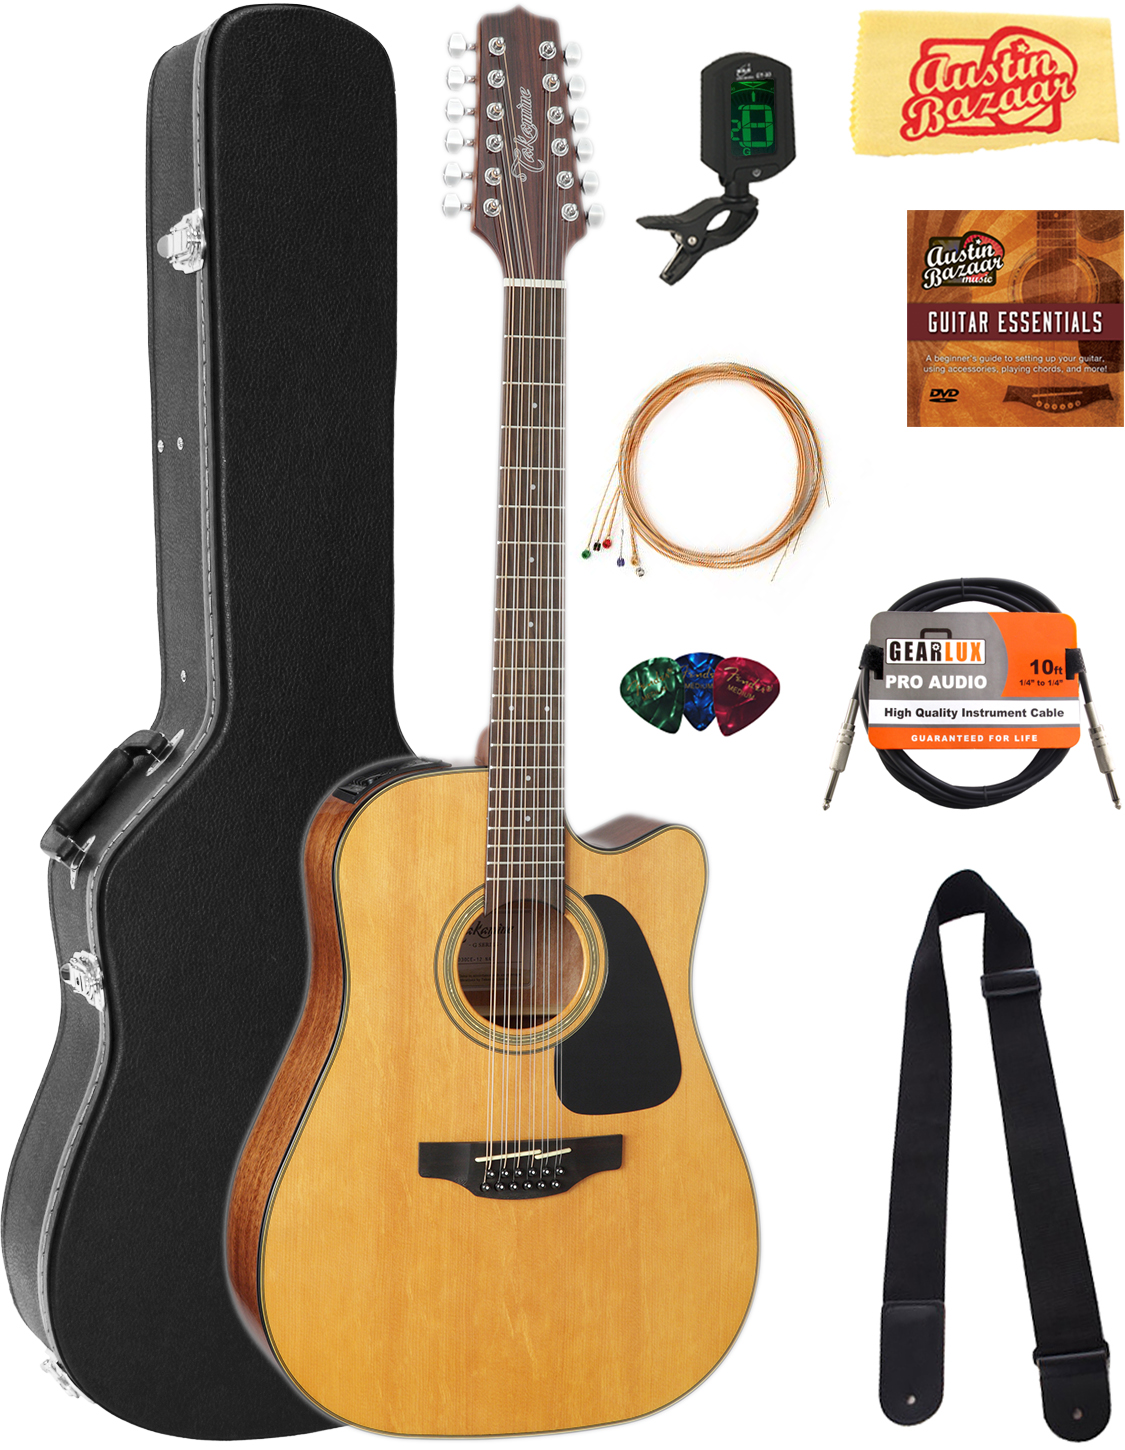 Takamine Gd30ce12 12 String Dreadnought Acoustic Electric Guitar W